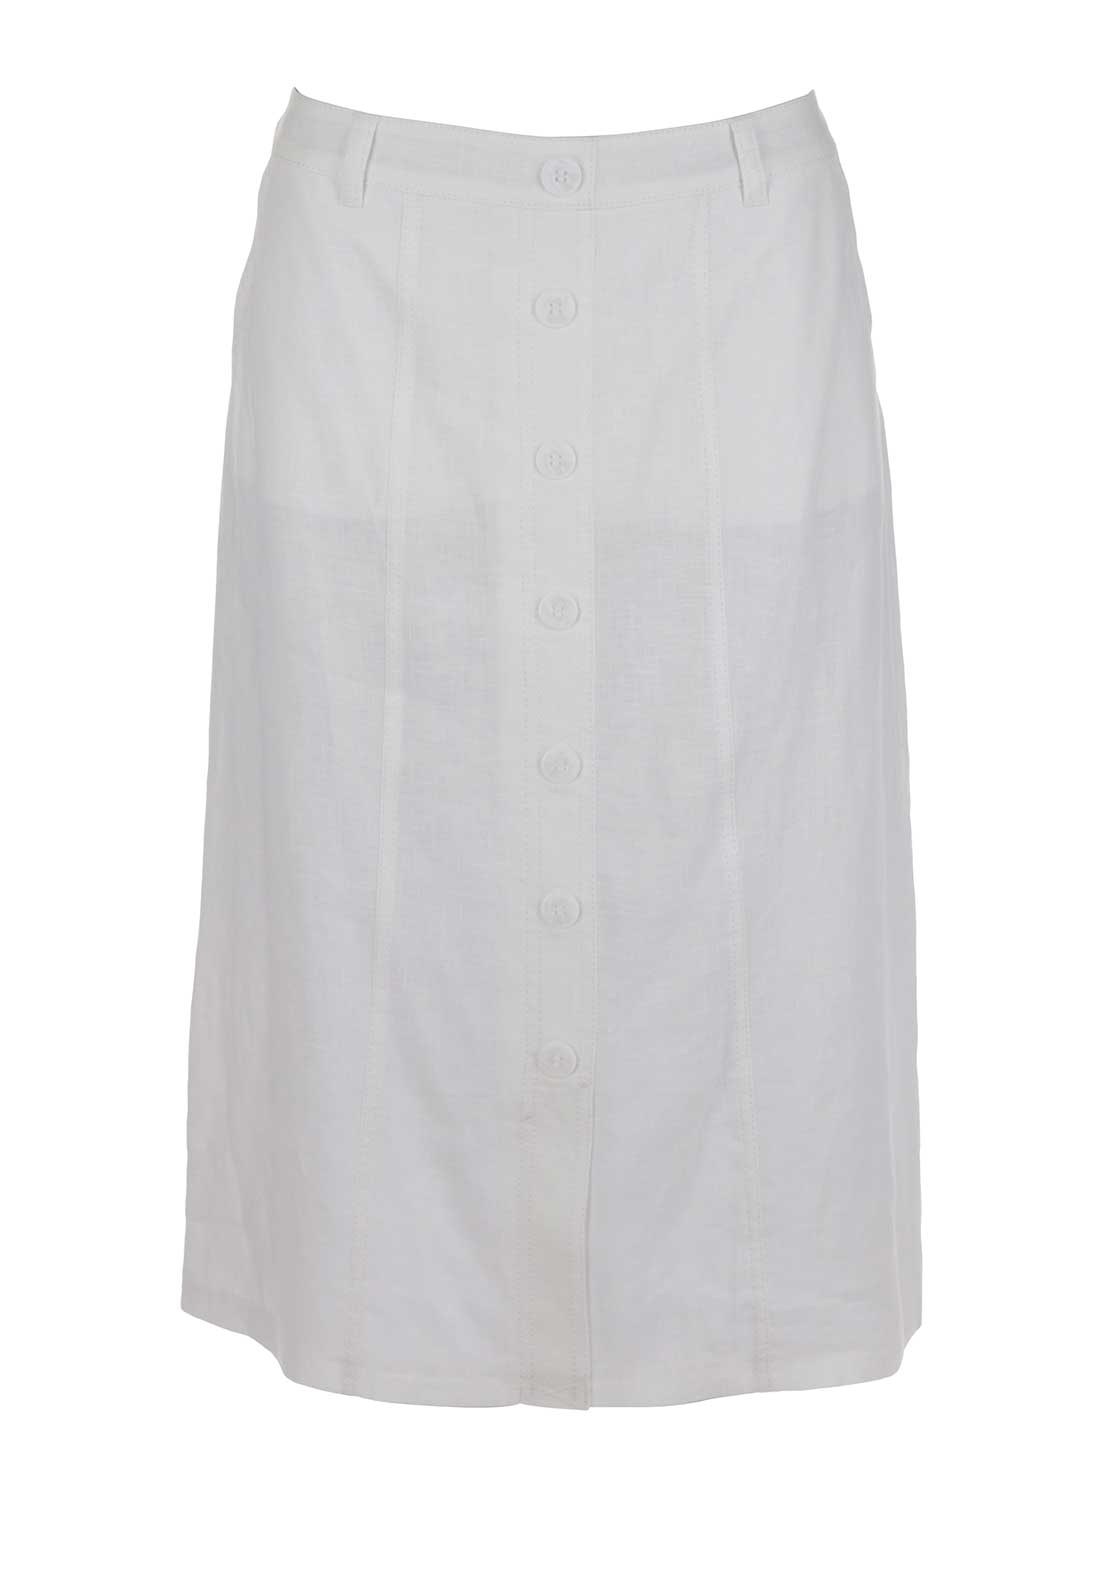 Gerry Weber Straight Linen Midi Skirt, White